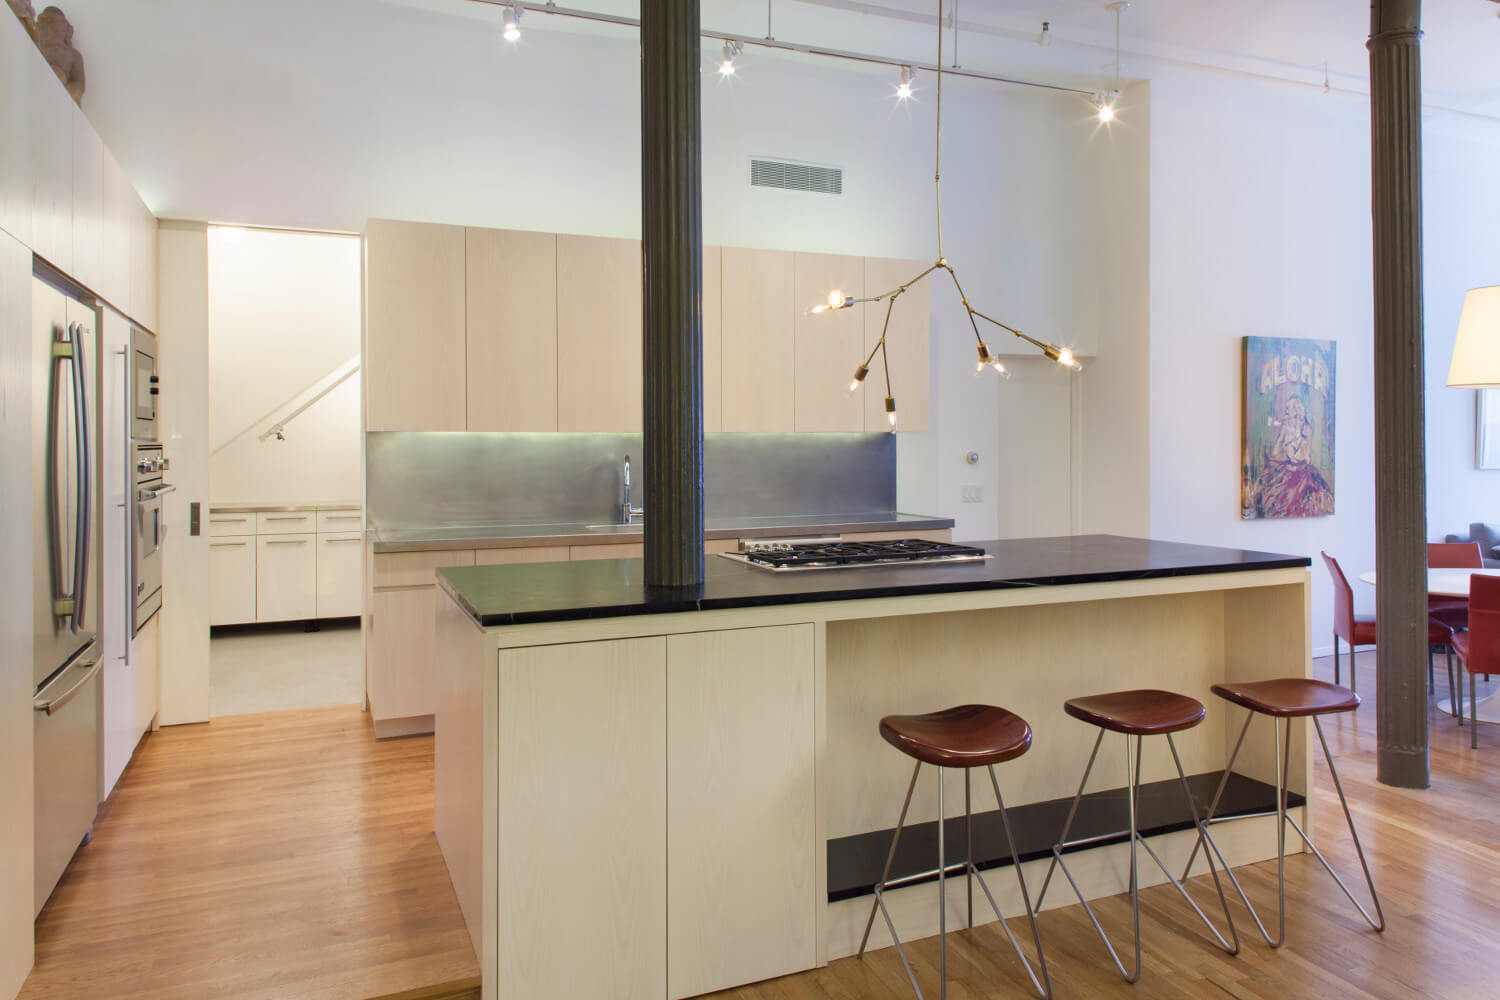 Sleek kitchen of Tribeca Loft has cabinetry of white-stained ash and countertops of soapstone and stainless steel.